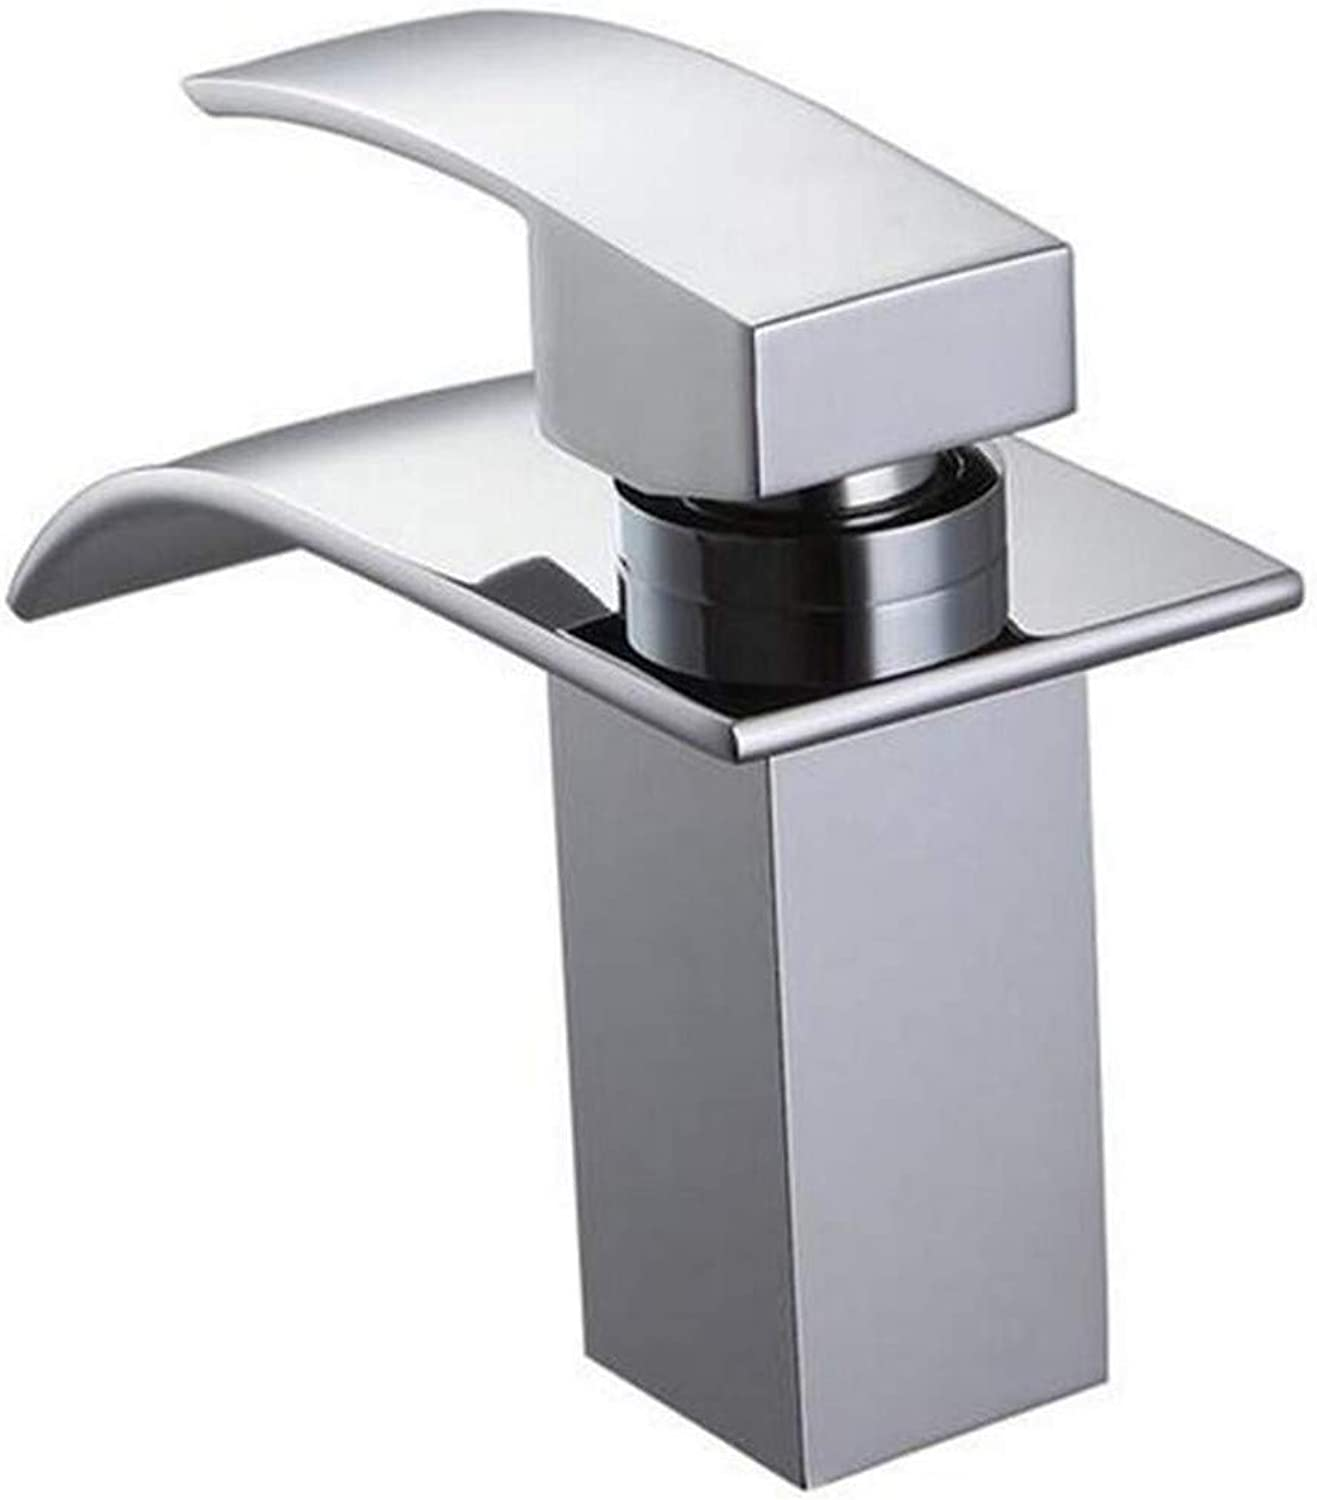 High Quality Kitchen Brass Stainless Steelwaterfall Bathroom Faucet Vanity Vessel Sinks Mixer Tap Cold and Hot Water Tap